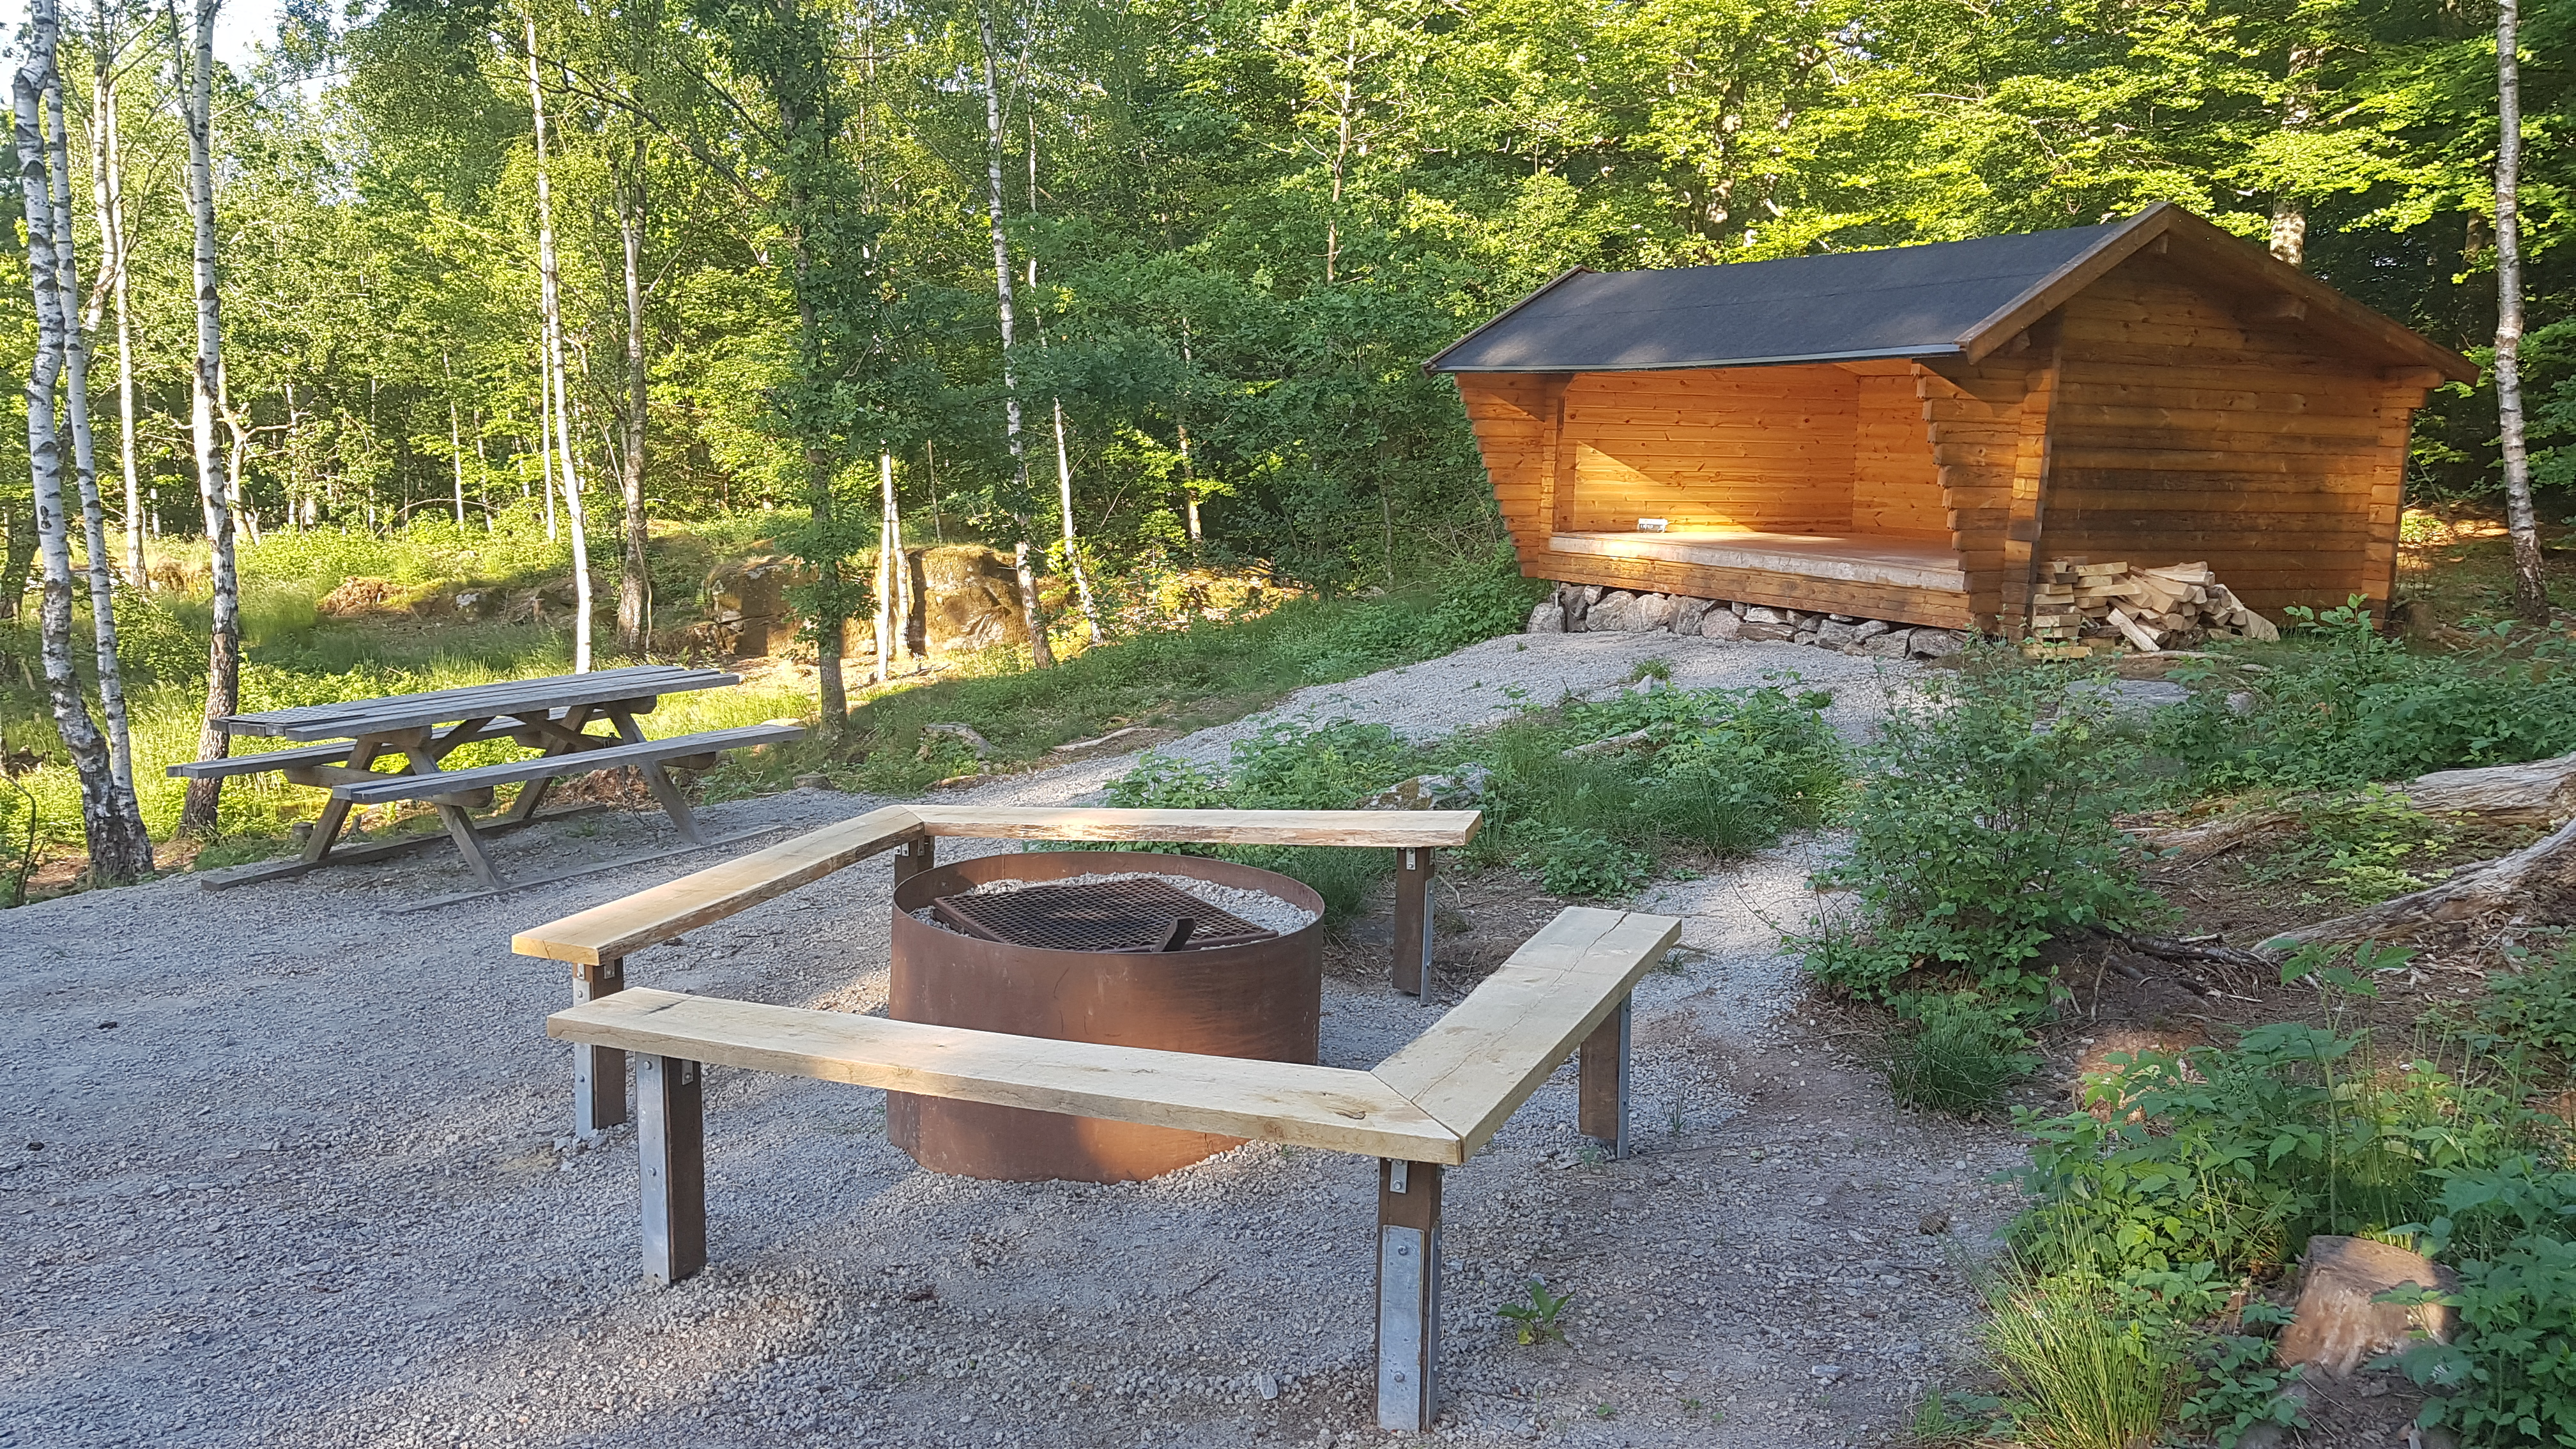 The campsite with a barbecue area at Göingeåsen ridge with a shelter for overnight stay.